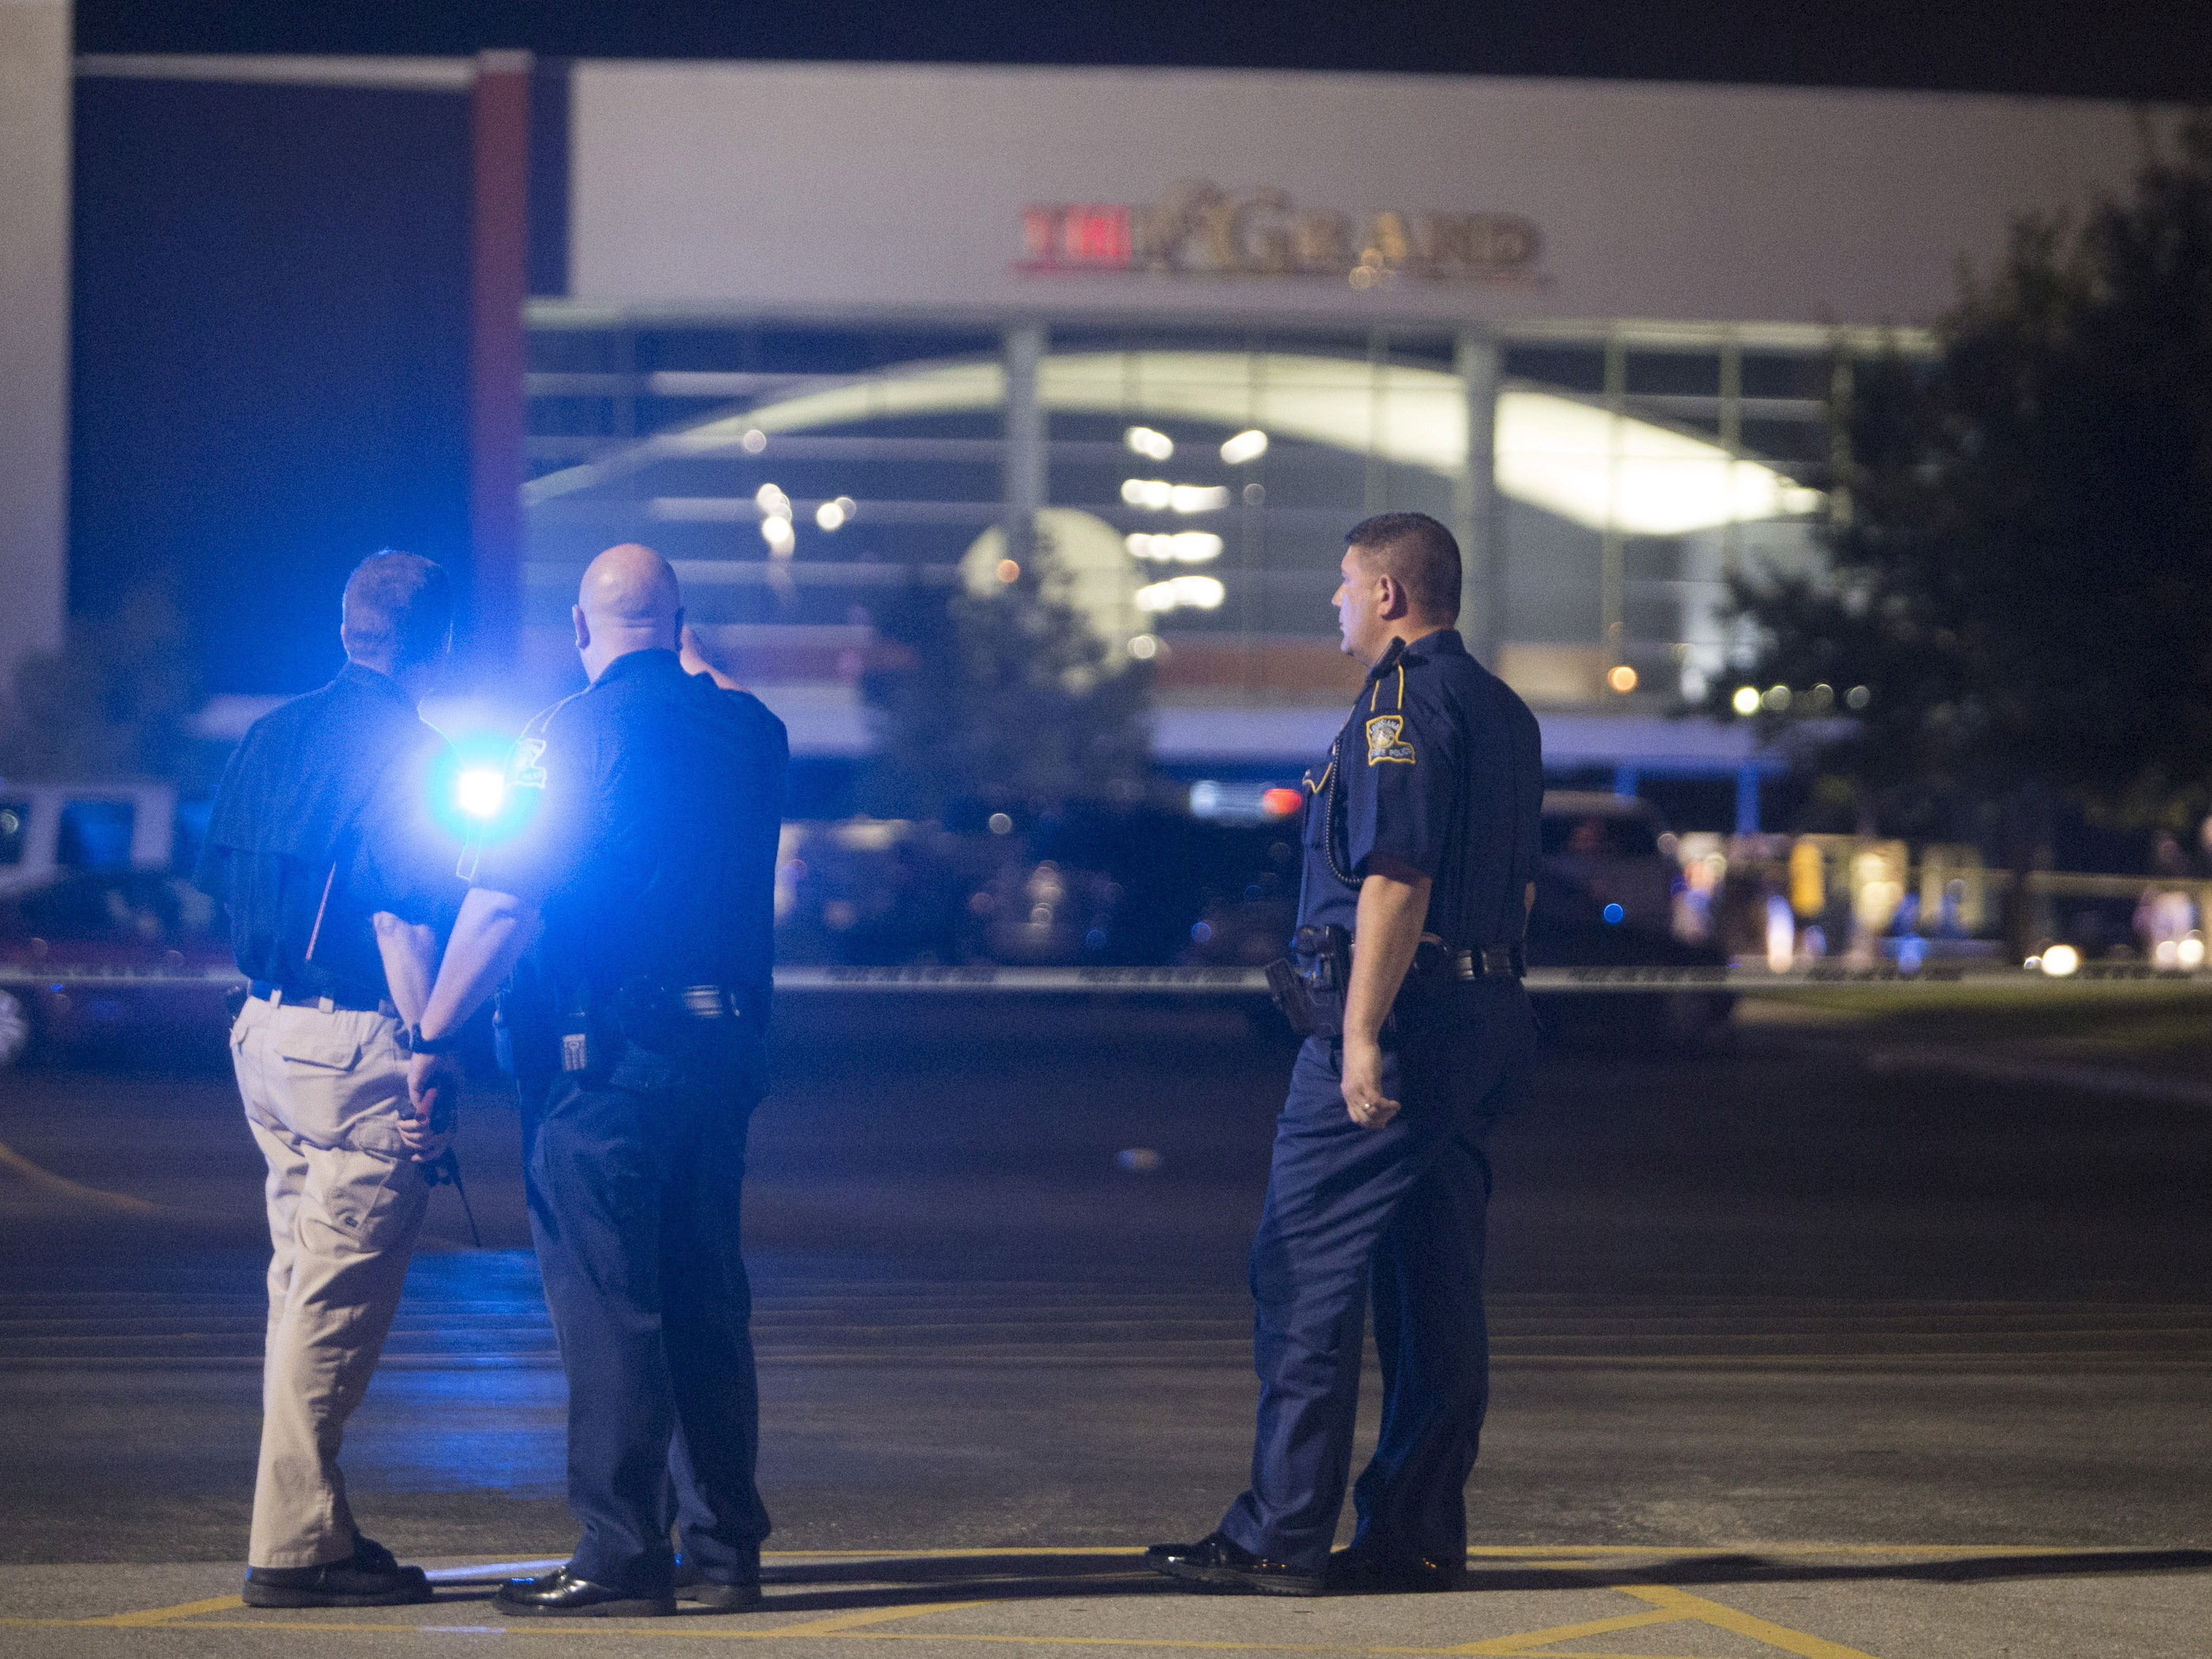 Officials stand by the scene outside a movie theater where a man opened fire on filmgoers Thursday in Lafayette, La. At least two were fatally wounded and seven others injured before the gunman killed himself. Lee Celano/Reuter